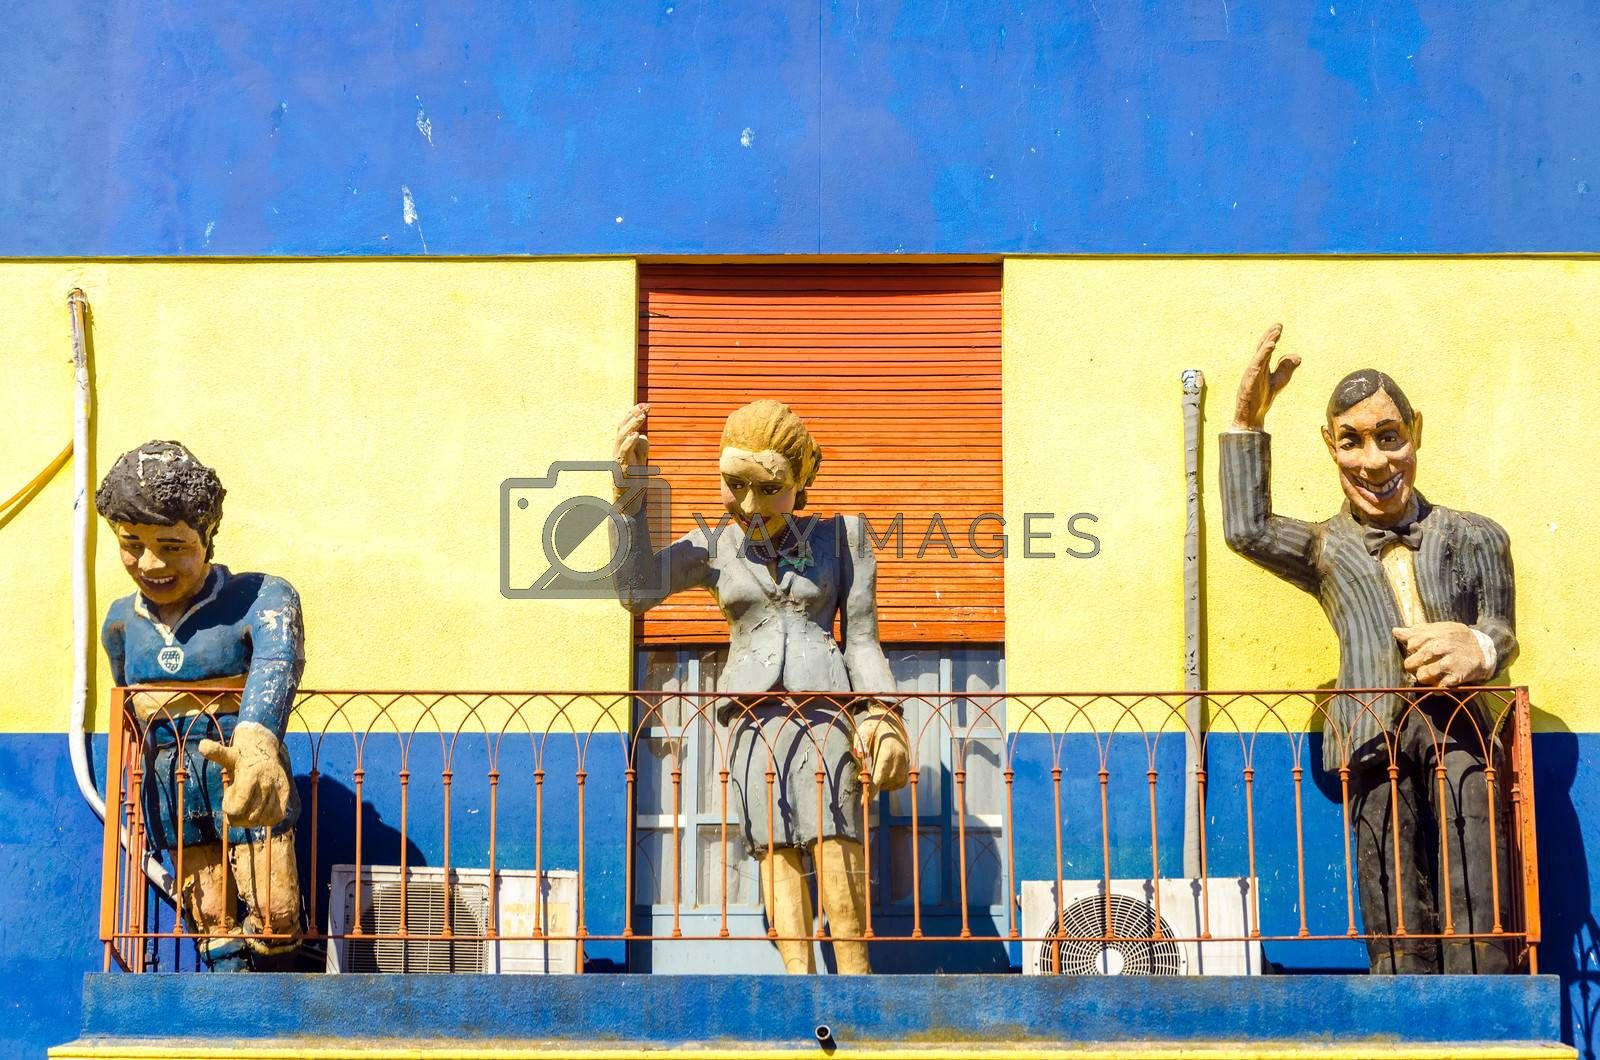 Statues with a yellow and blue wall in La Boca neighborhood of Buenos Aires, Argentina